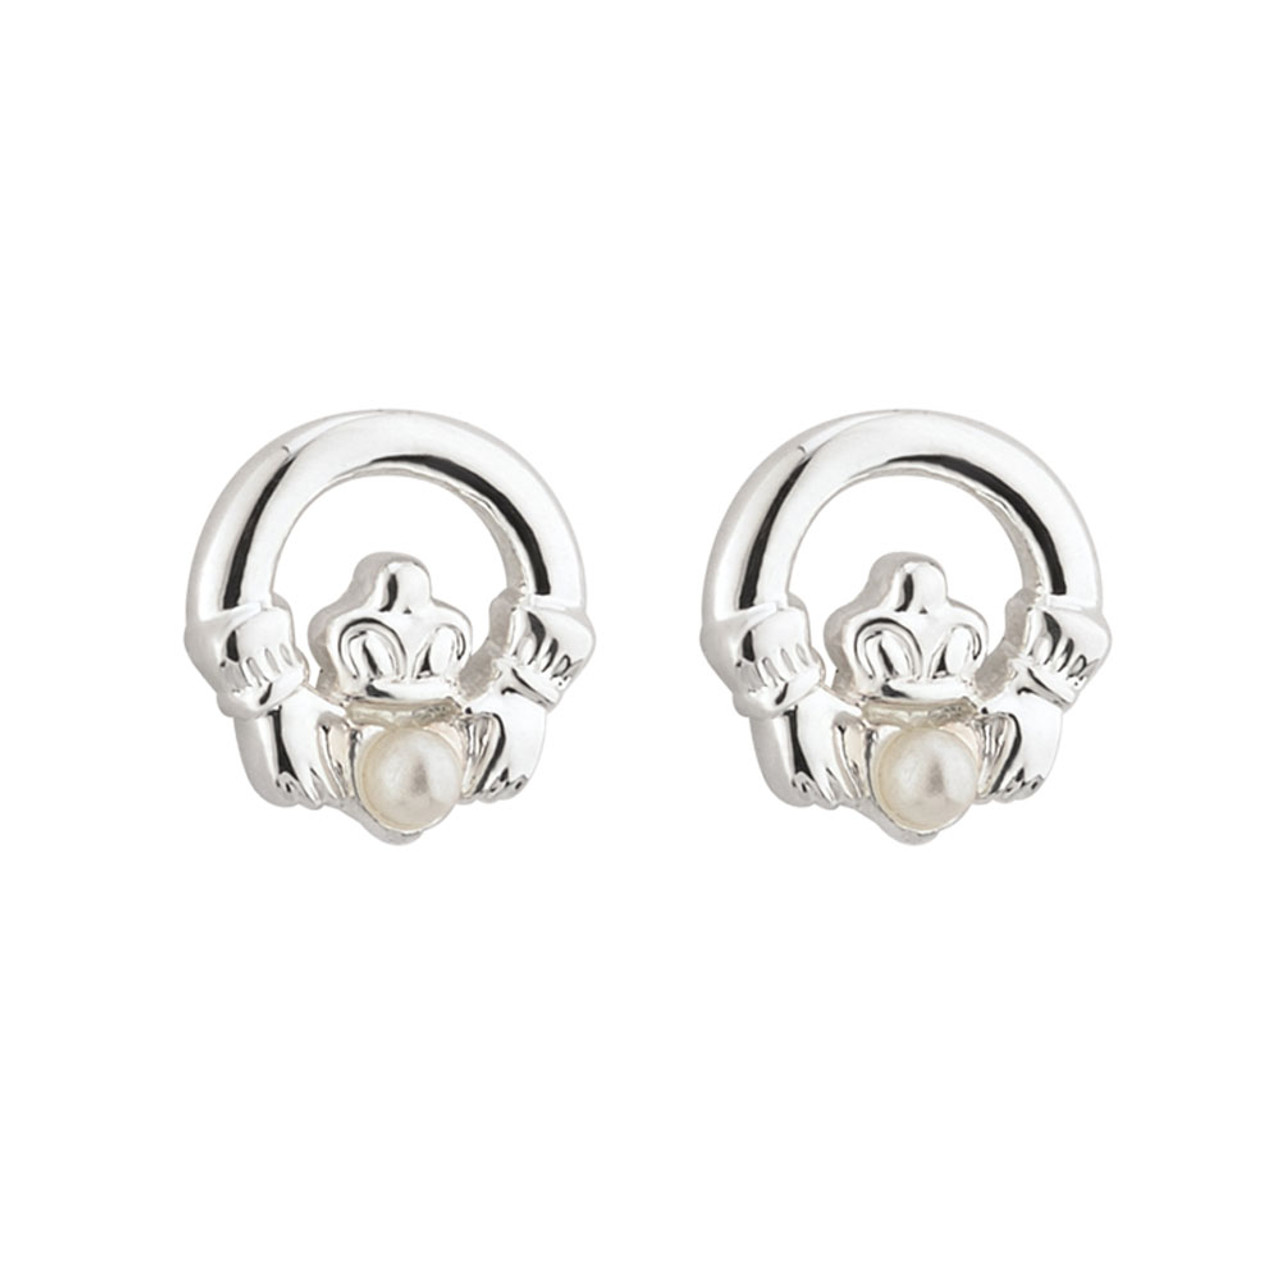 Child's Claddagh Earrings in Silverplate